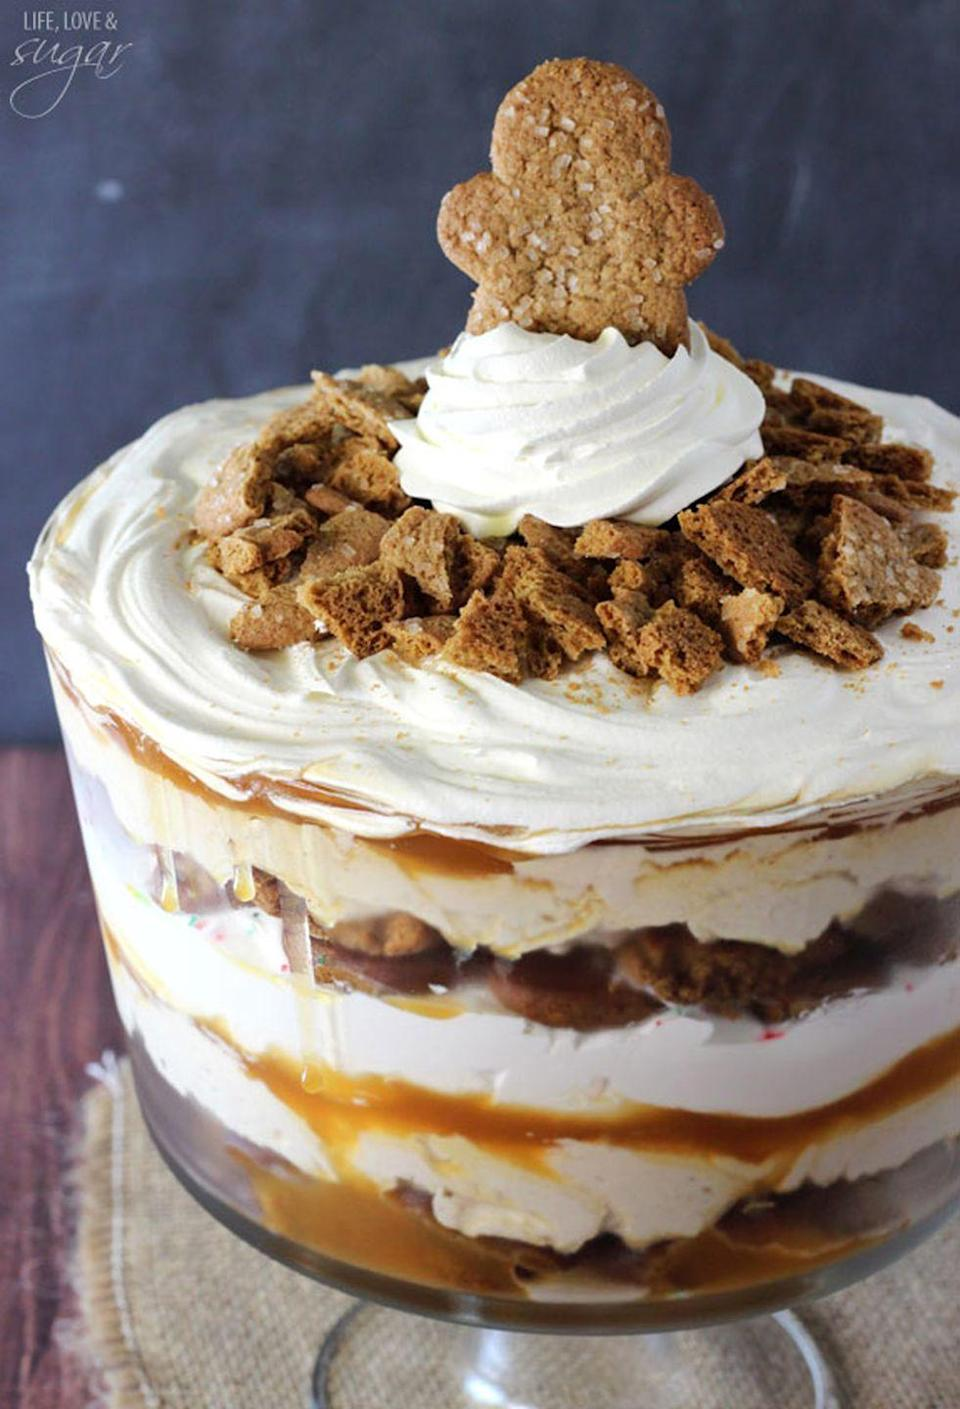 """<p>This holiday dessert is loaded with gingerbread cookies, a gingerbread cheese cake filling, <em>and </em>caramel sauce.</p><p><strong>Get the recipe at <a href=""""https://www.lifeloveandsugar.com/2014/12/10/gingerbread-cheesecake-trifle/"""" rel=""""nofollow noopener"""" target=""""_blank"""" data-ylk=""""slk:Life, Love and Sugar"""" class=""""link rapid-noclick-resp"""">Life, Love and Sugar</a>.</strong> </p>"""